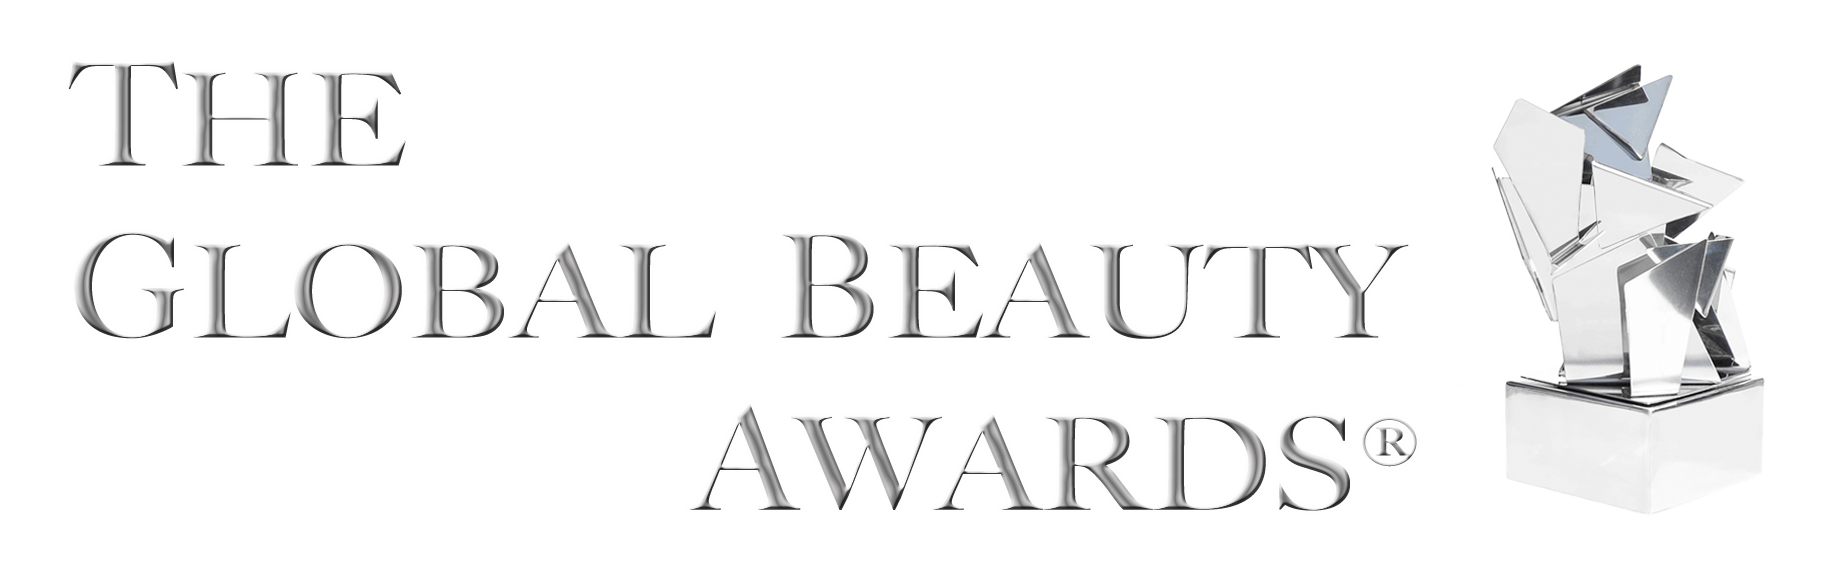 The Global Beauty Awards Retina Logo